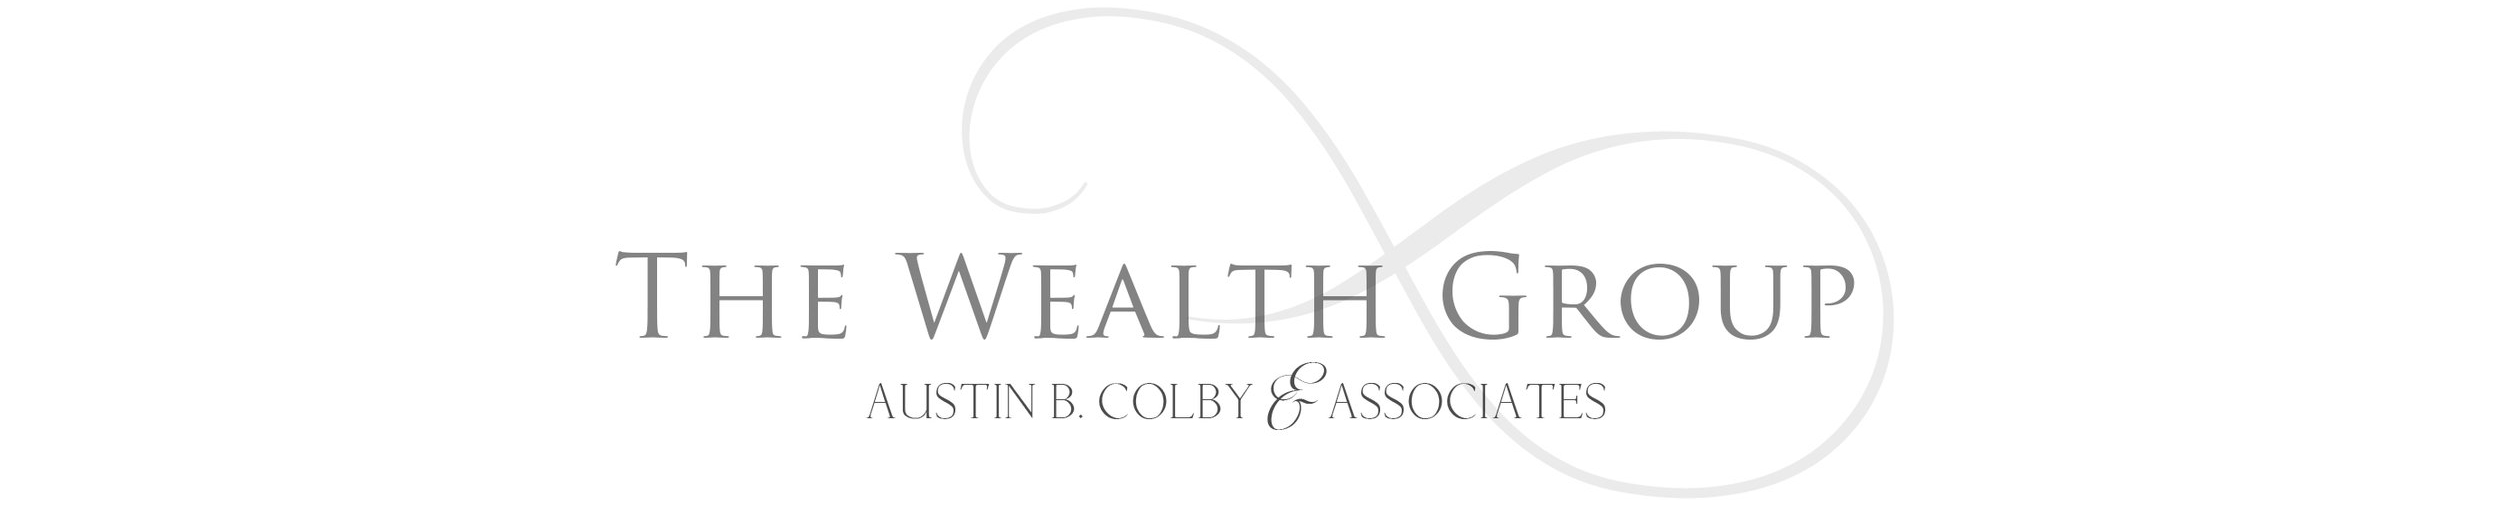 The-Wealth-Group-swirl-light-background-web.jpg